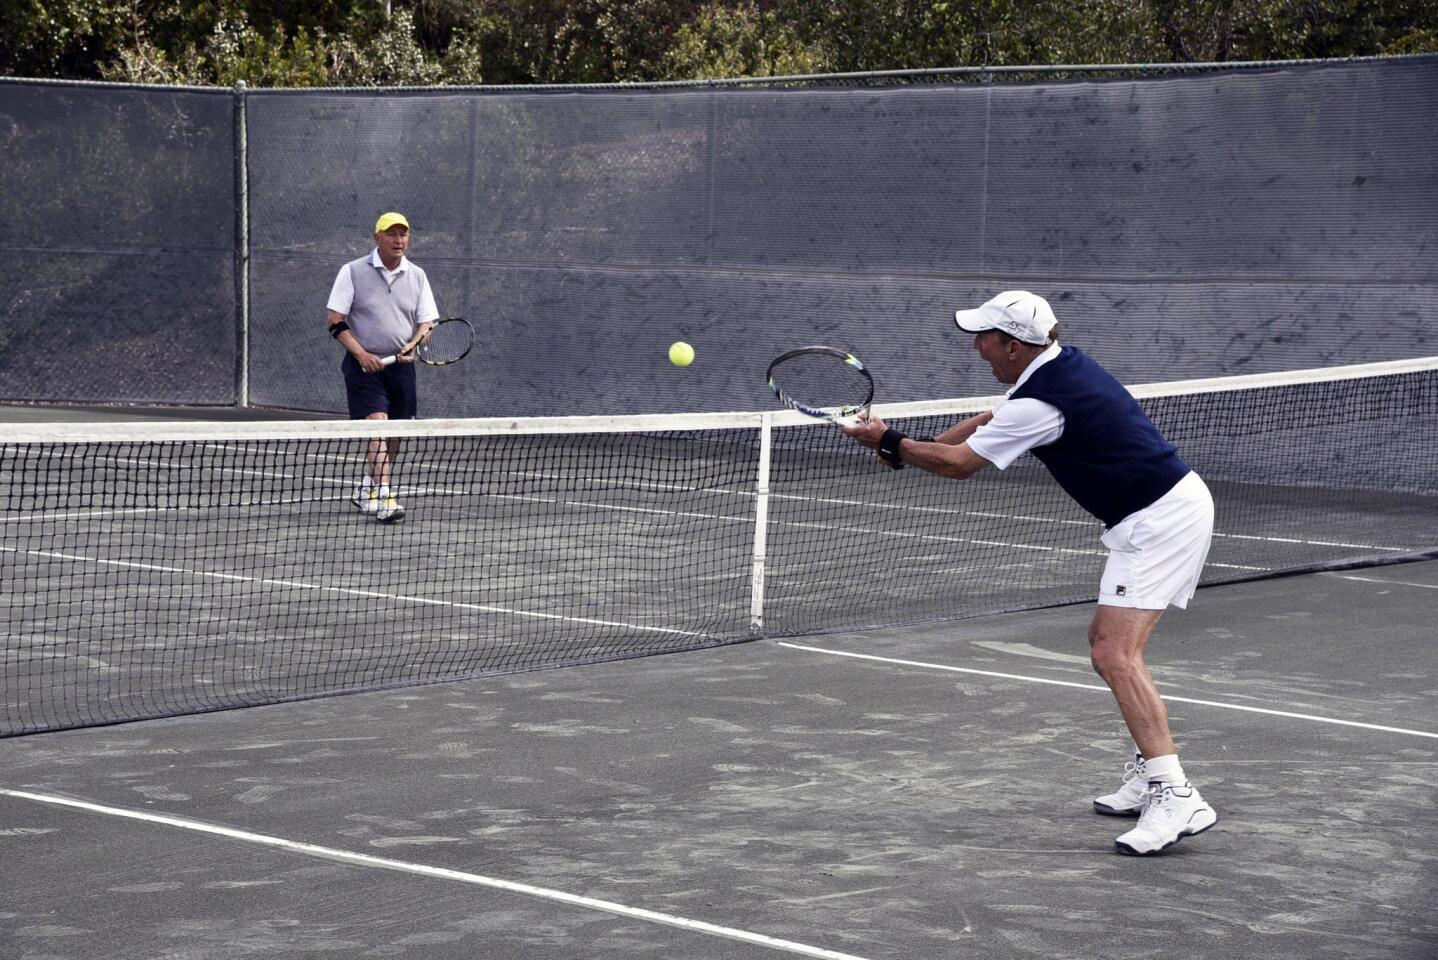 RSF Tennis Club holds Wimbledon Woods